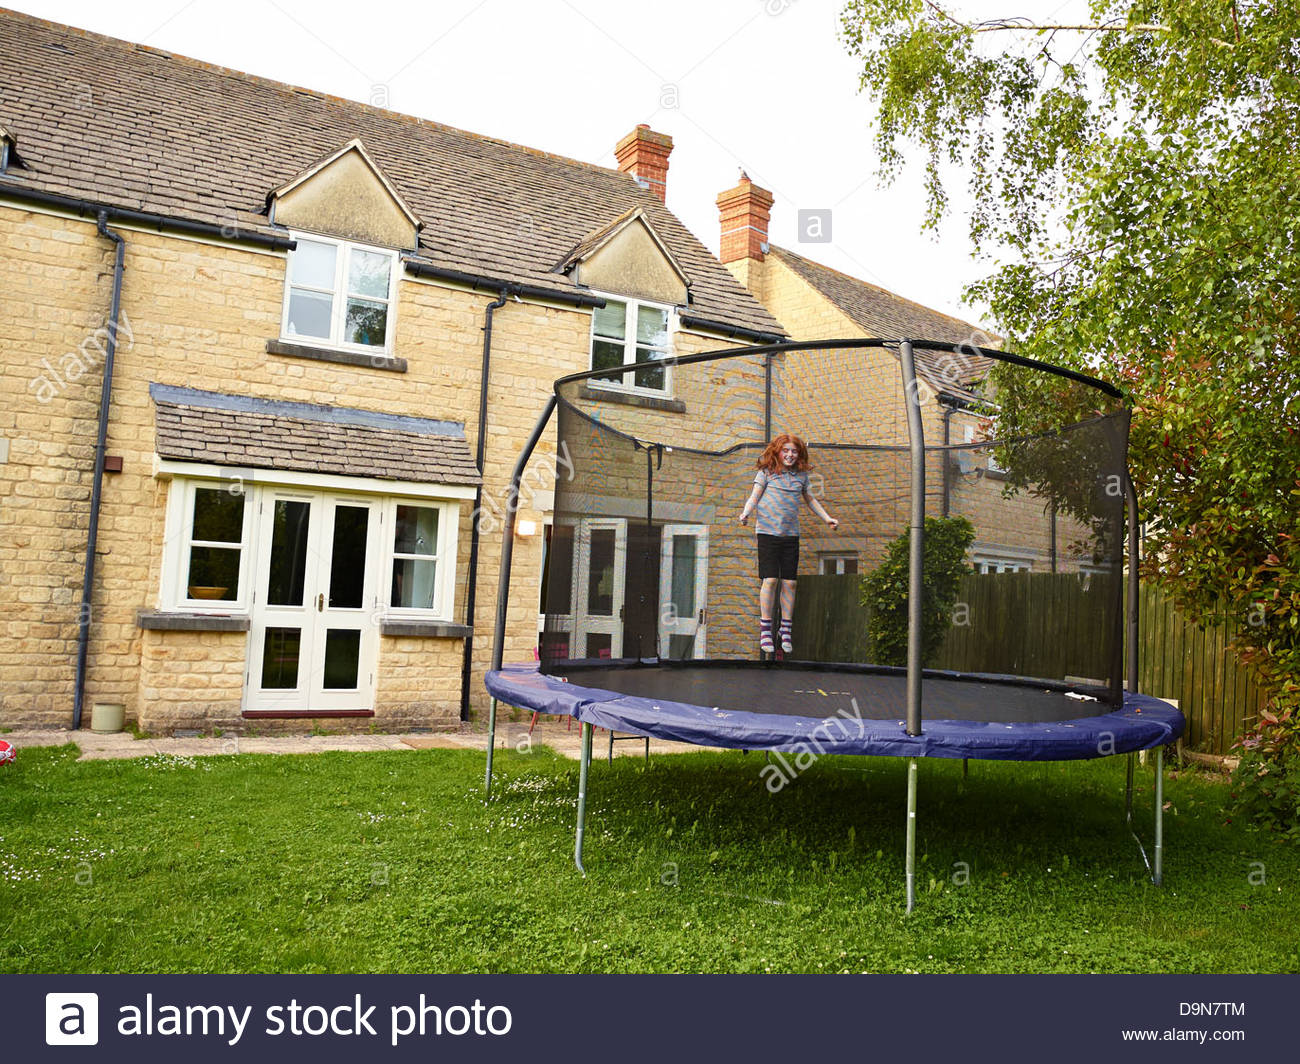 Young Girl Bouncing On A Garden Trampoline With A Safety Net At Dusk In The  Summer In Oxfordshire England UK